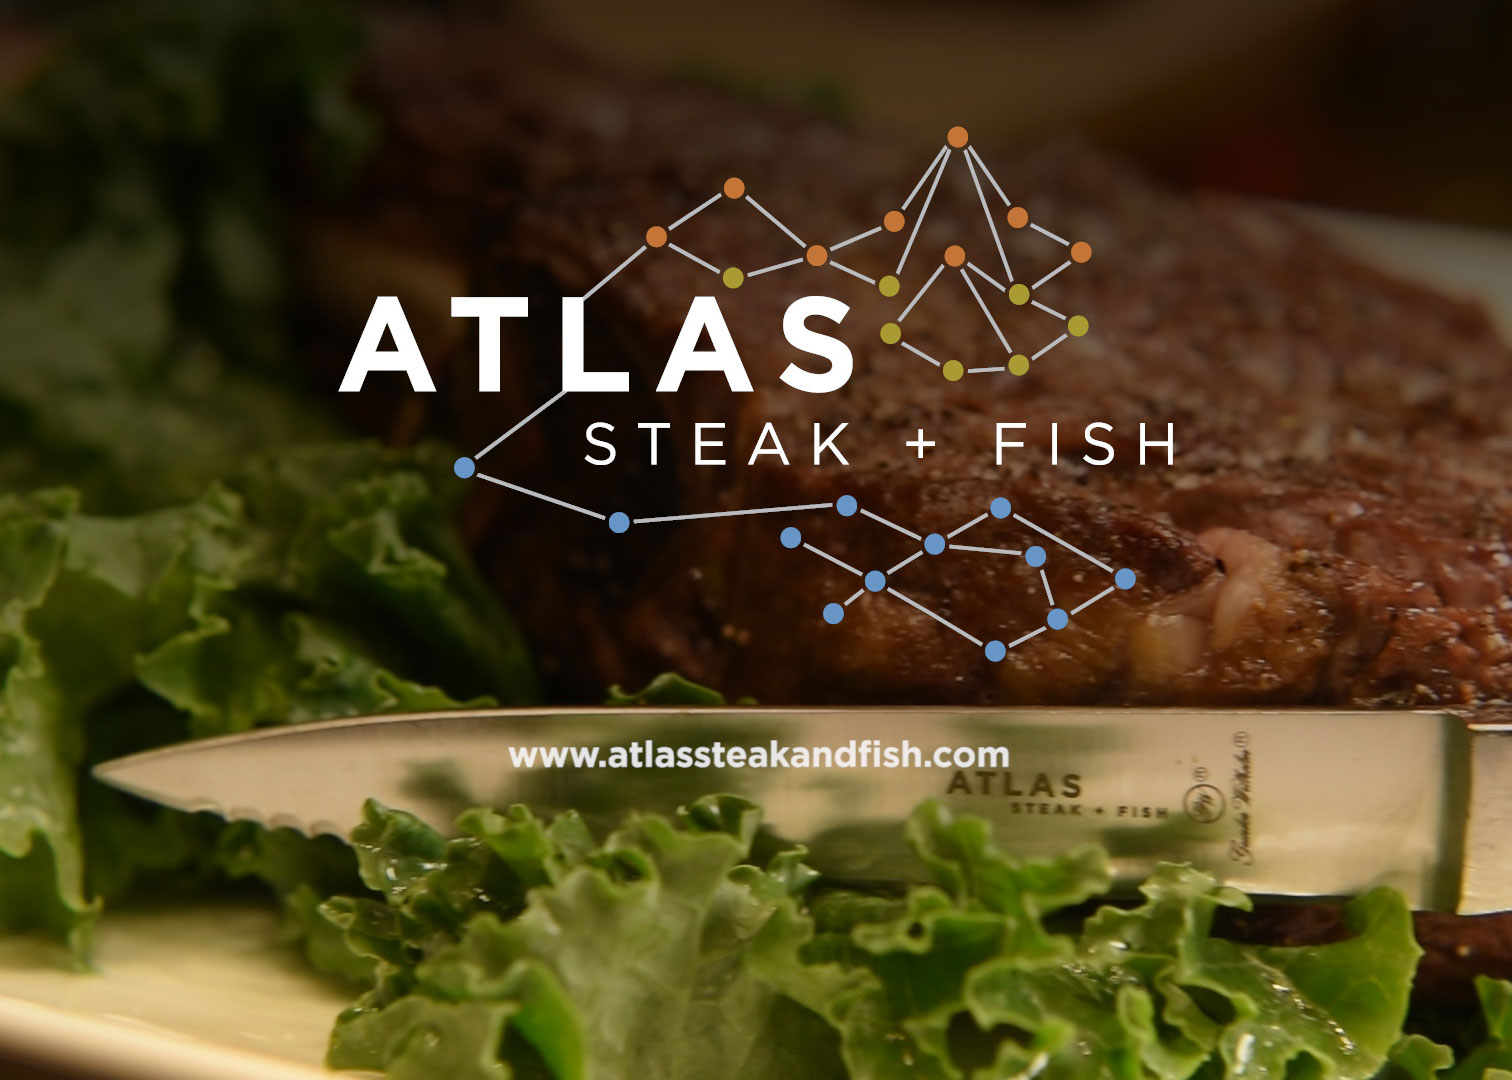 ATLAS-STEAK+FISH_7x5